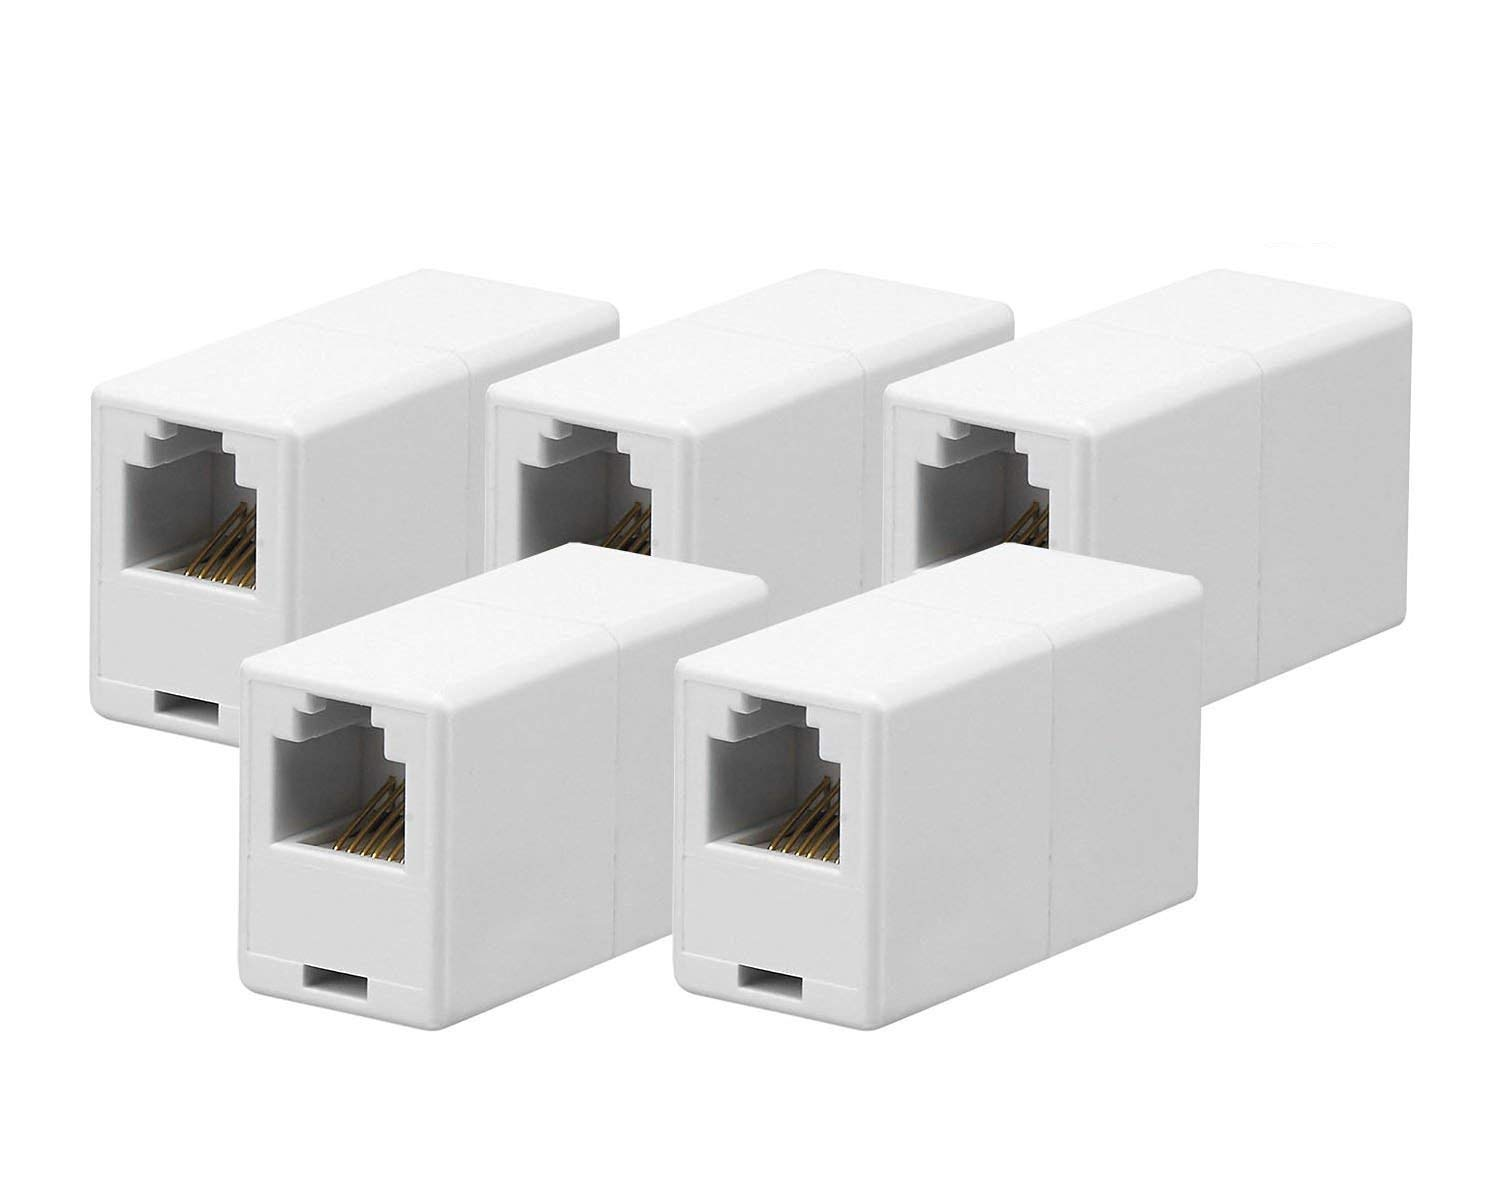 Amazon.com: iMBAPrice RJ12 / RJ11 6P6C Straight Telephone Inline Coupler (5  Pack): Computers & Accessories